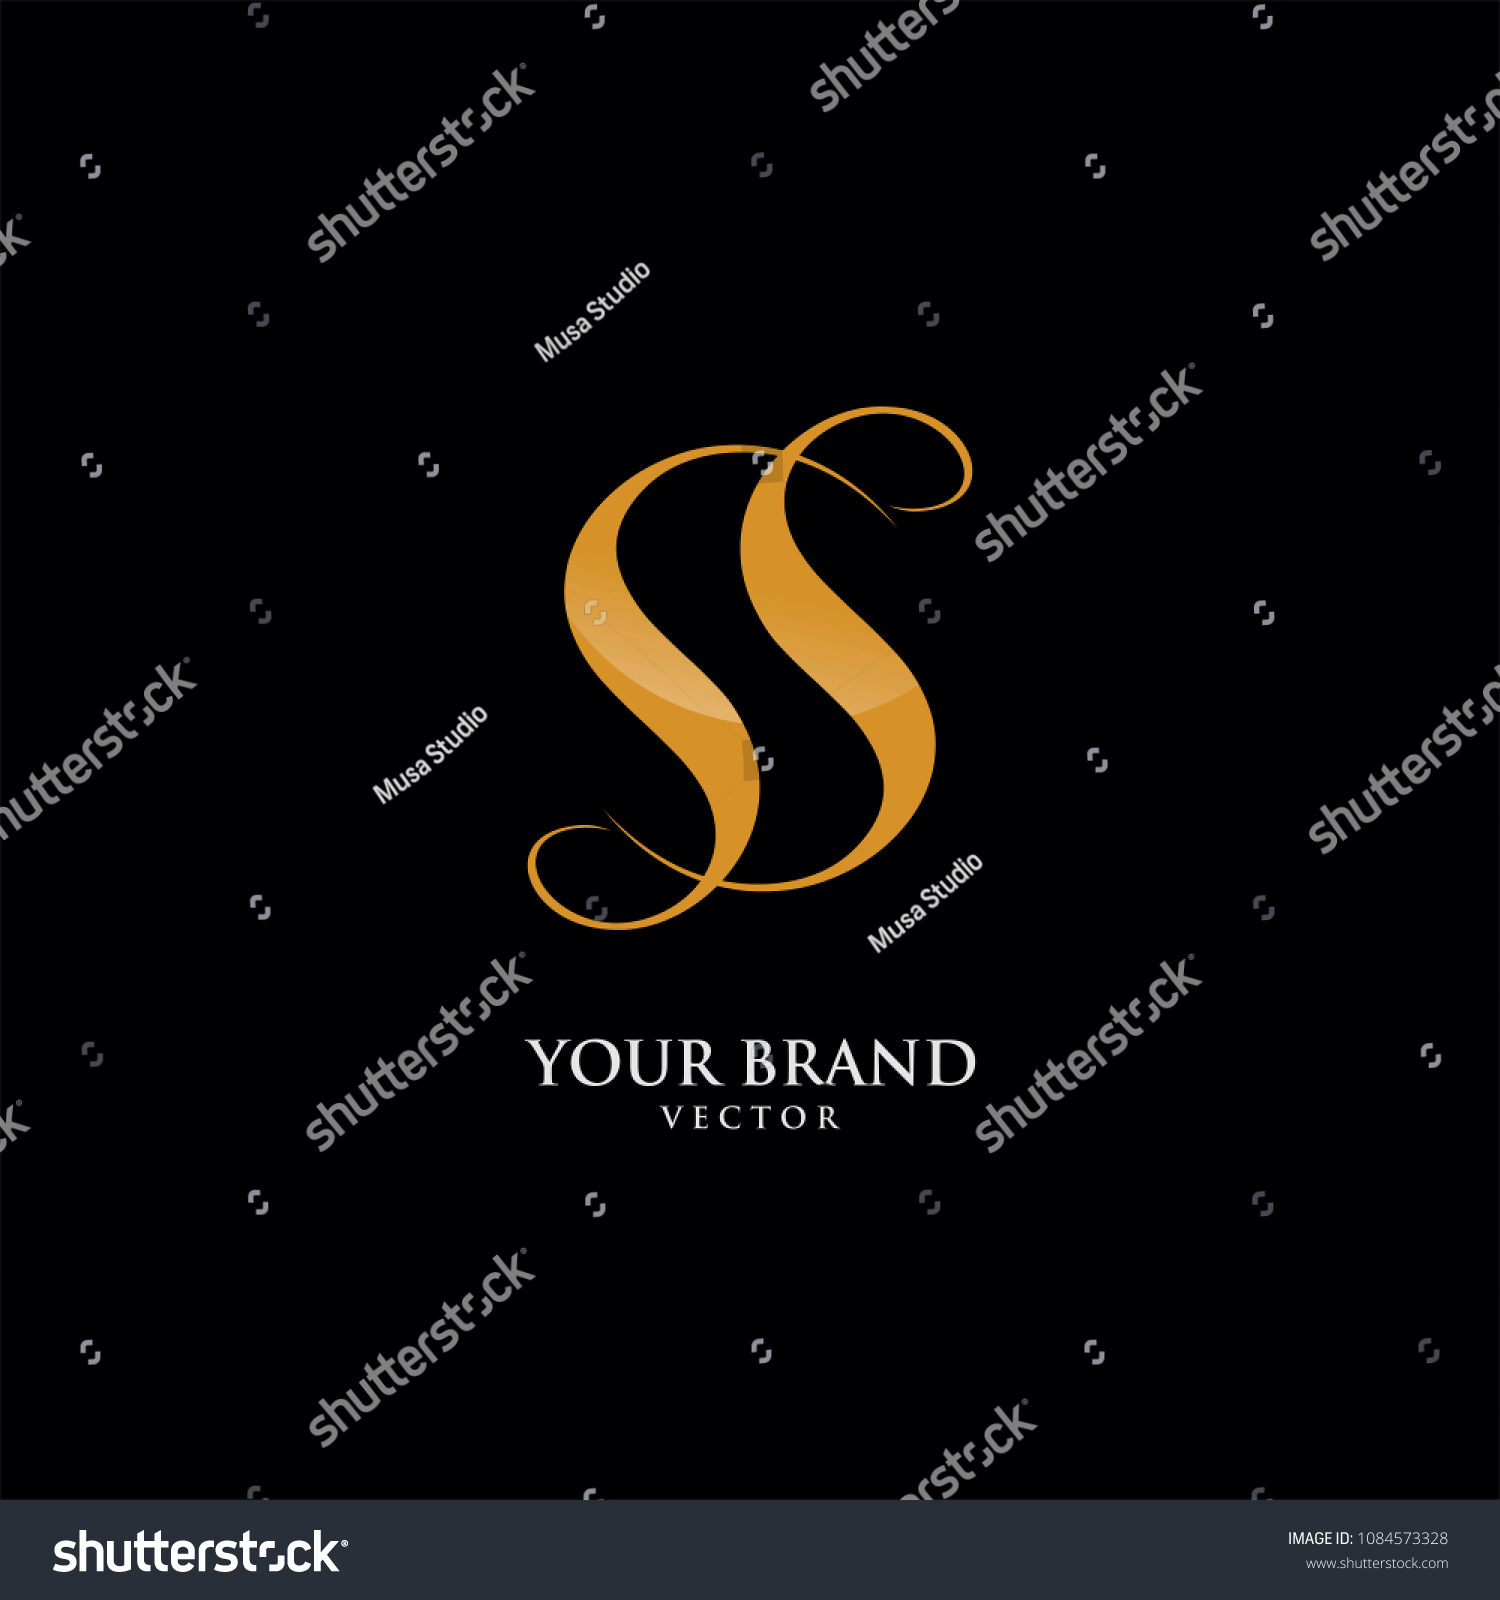 double s letter logo template stock vector royalty free 1084573328